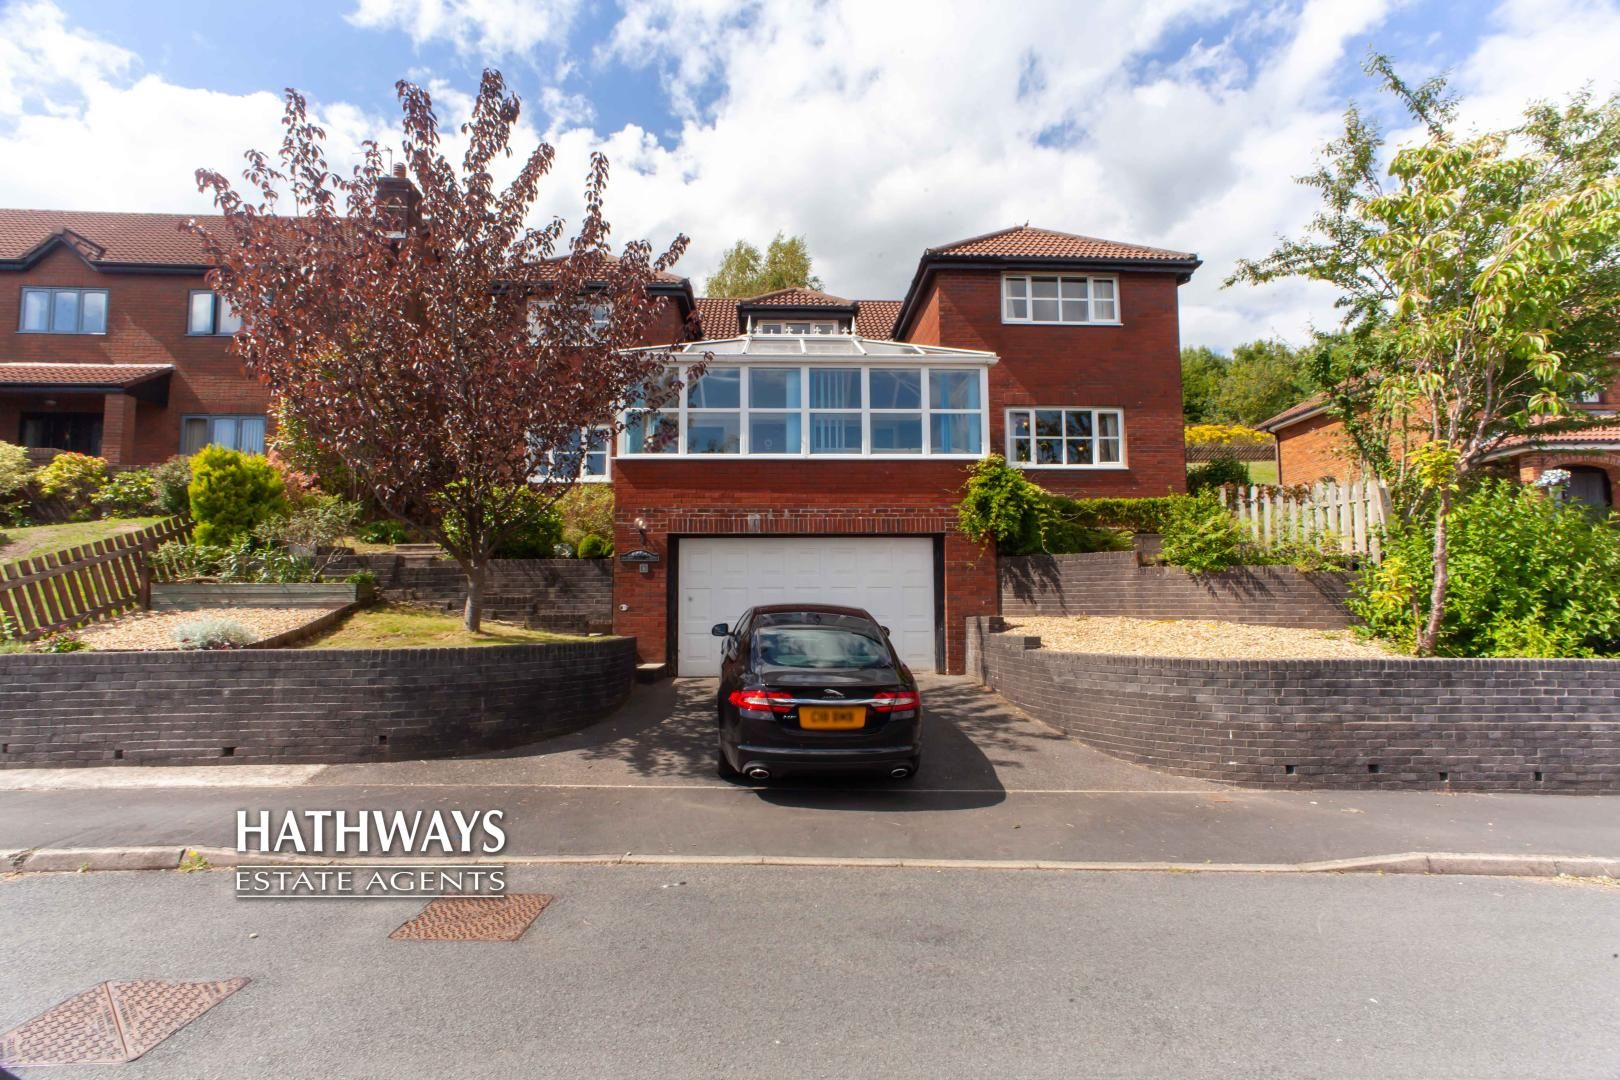 5 bed house for sale in Parkwood Close - Property Image 1